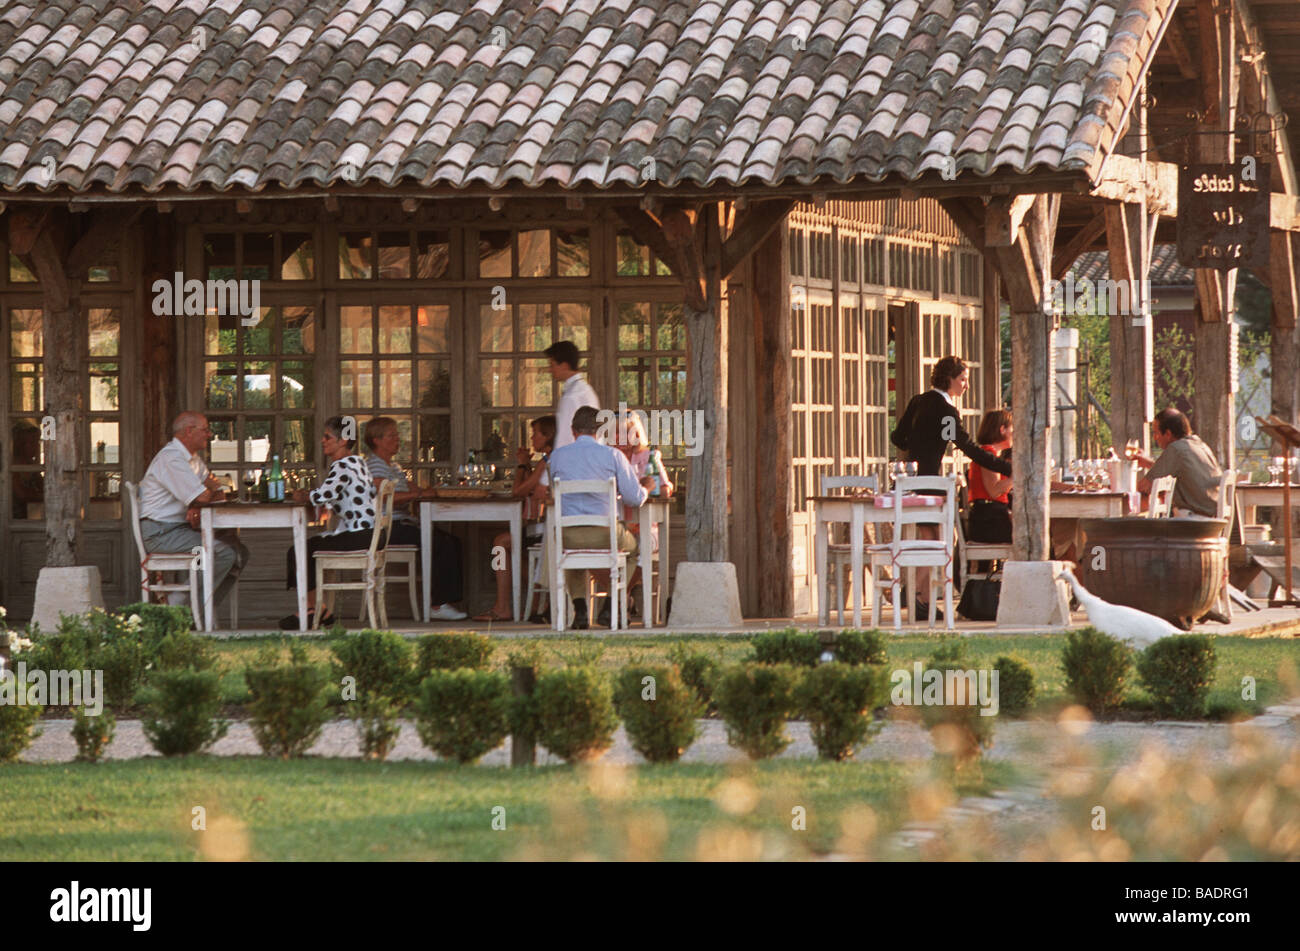 France gironde martillac les sources du caudalie hotel - La table du lavoir restaurant martillac ...